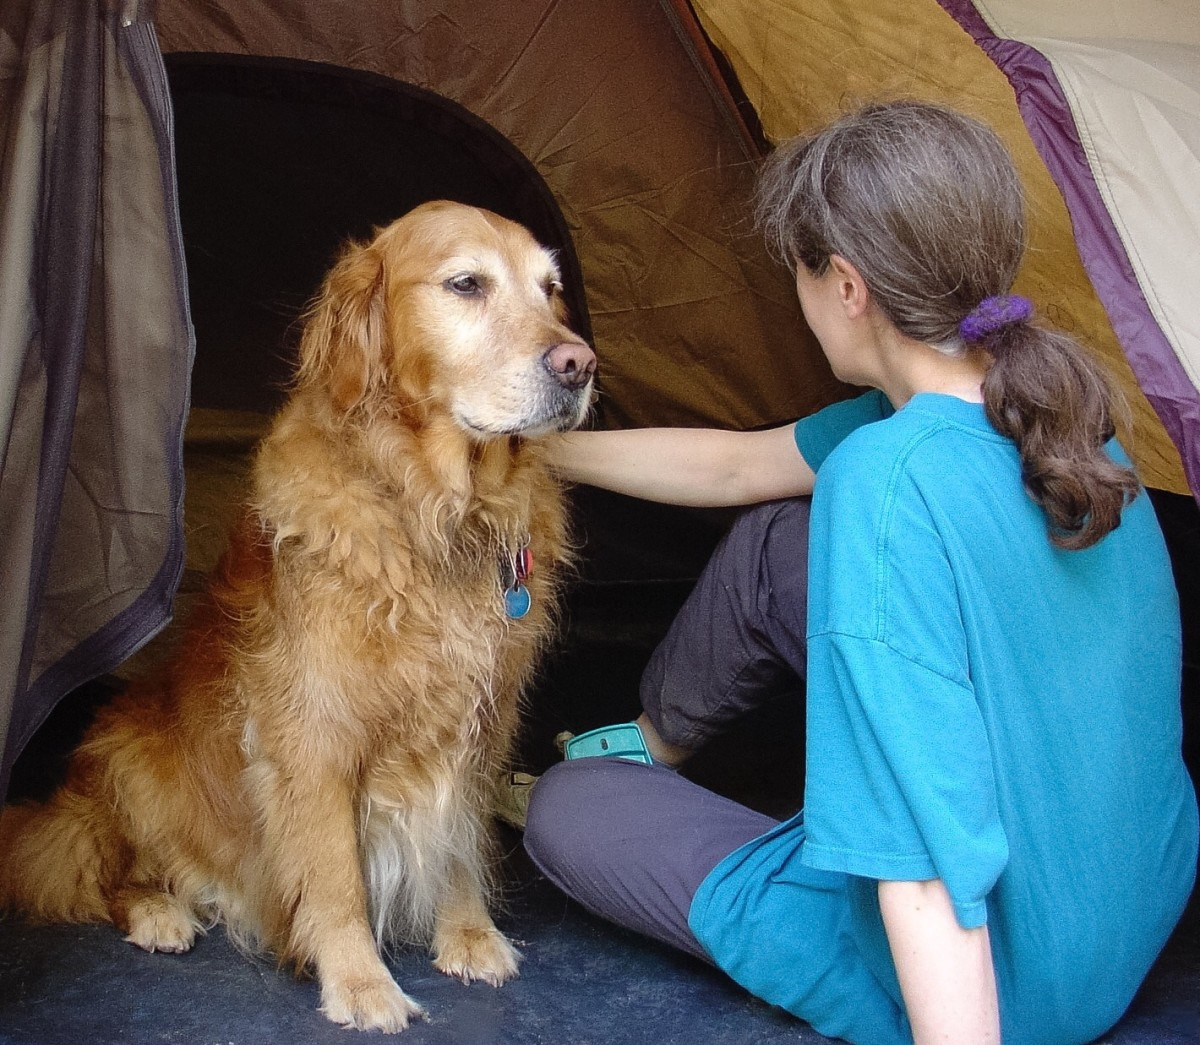 Rapamycin, mTOR, and Possible Anti-Aging Effects in Dogs